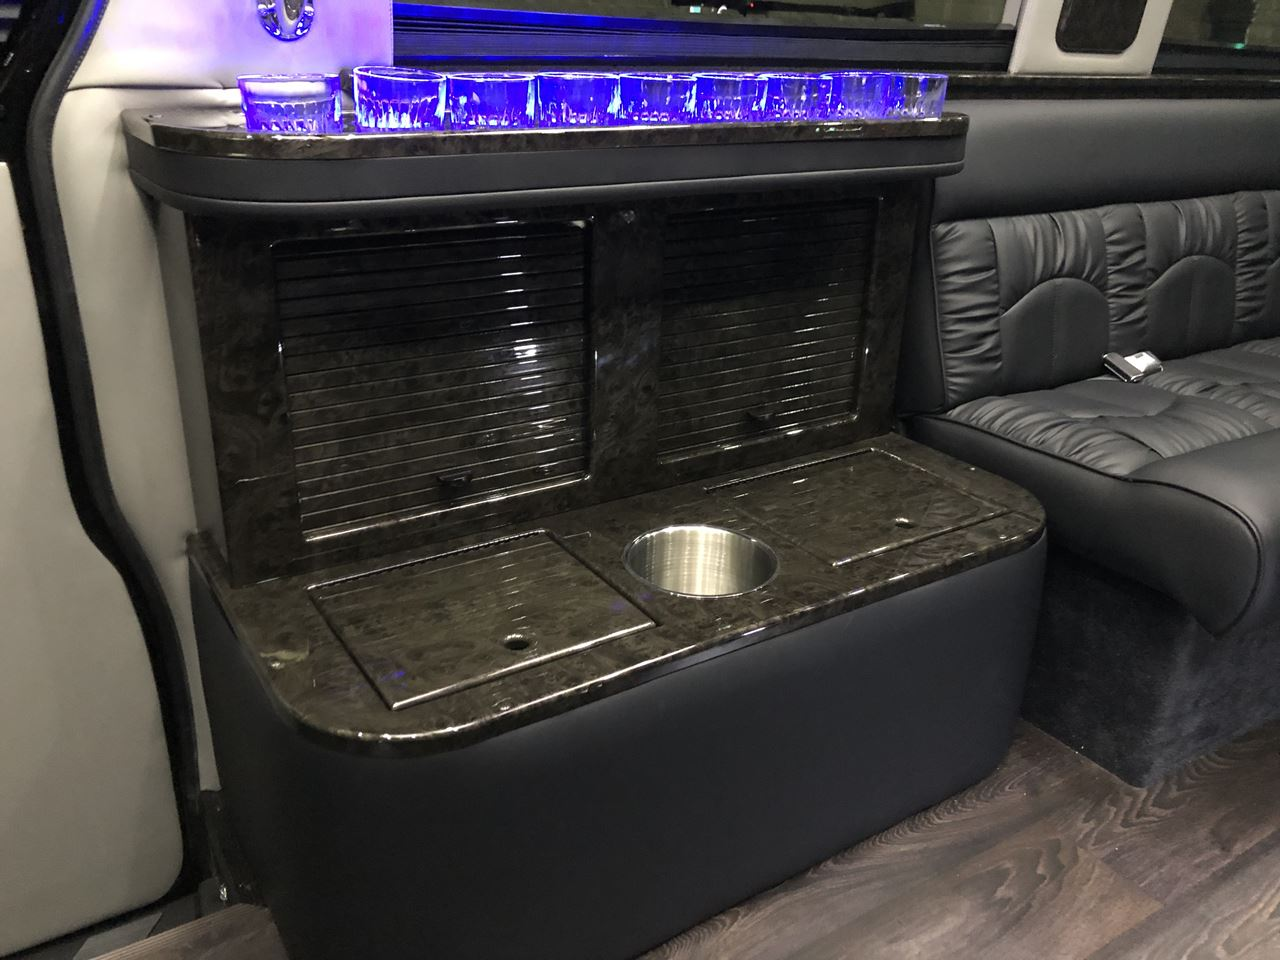 2019 Mercedes Benz Midwest Automotive Sprinter Limousine 21 15